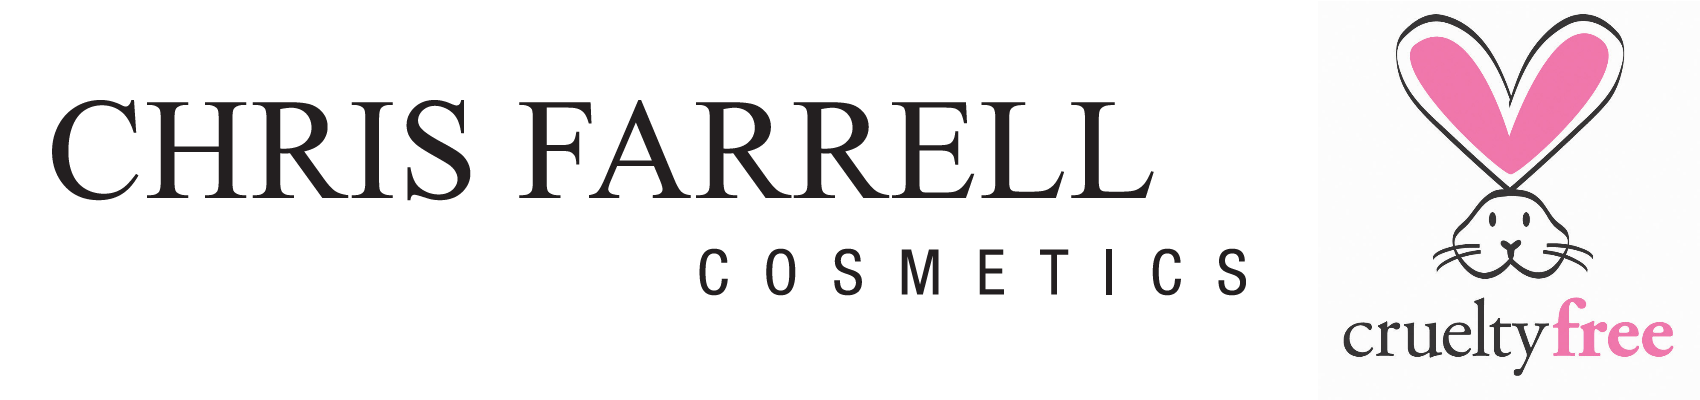 Chris Farrell Cosmetics USA